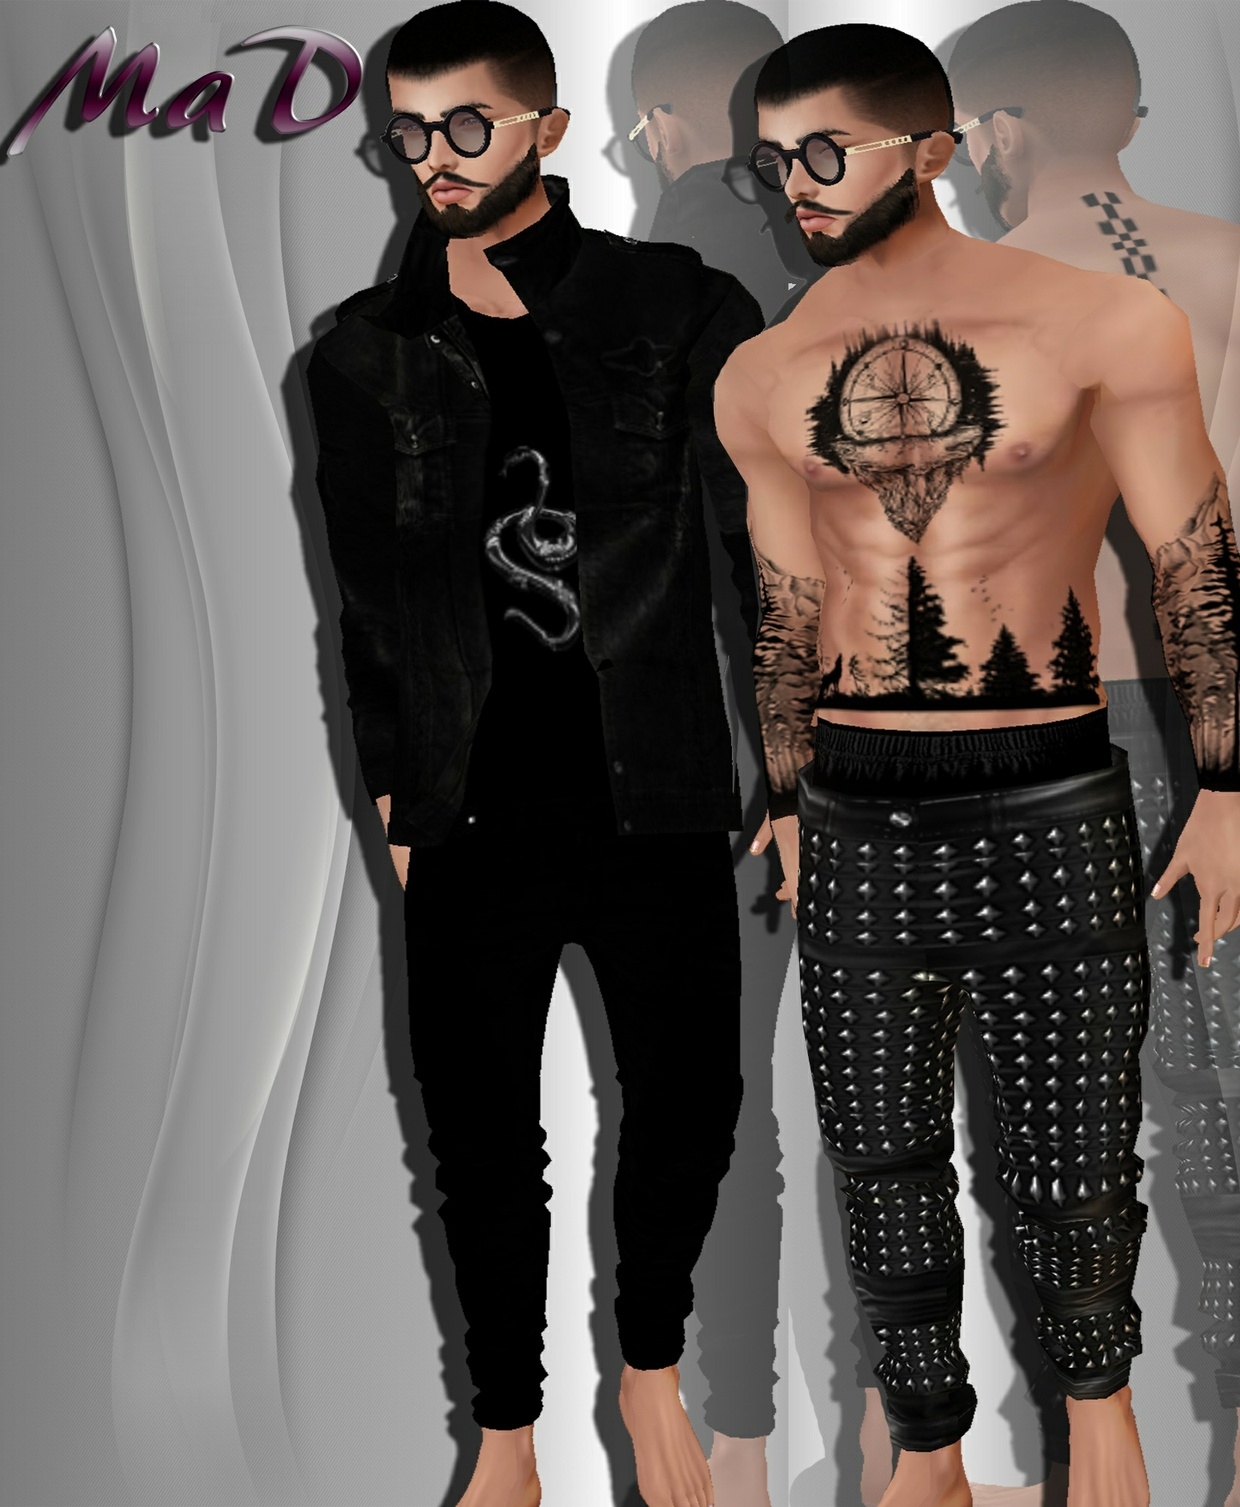 MaD Male Black set + tattoo RESELL RIGHT